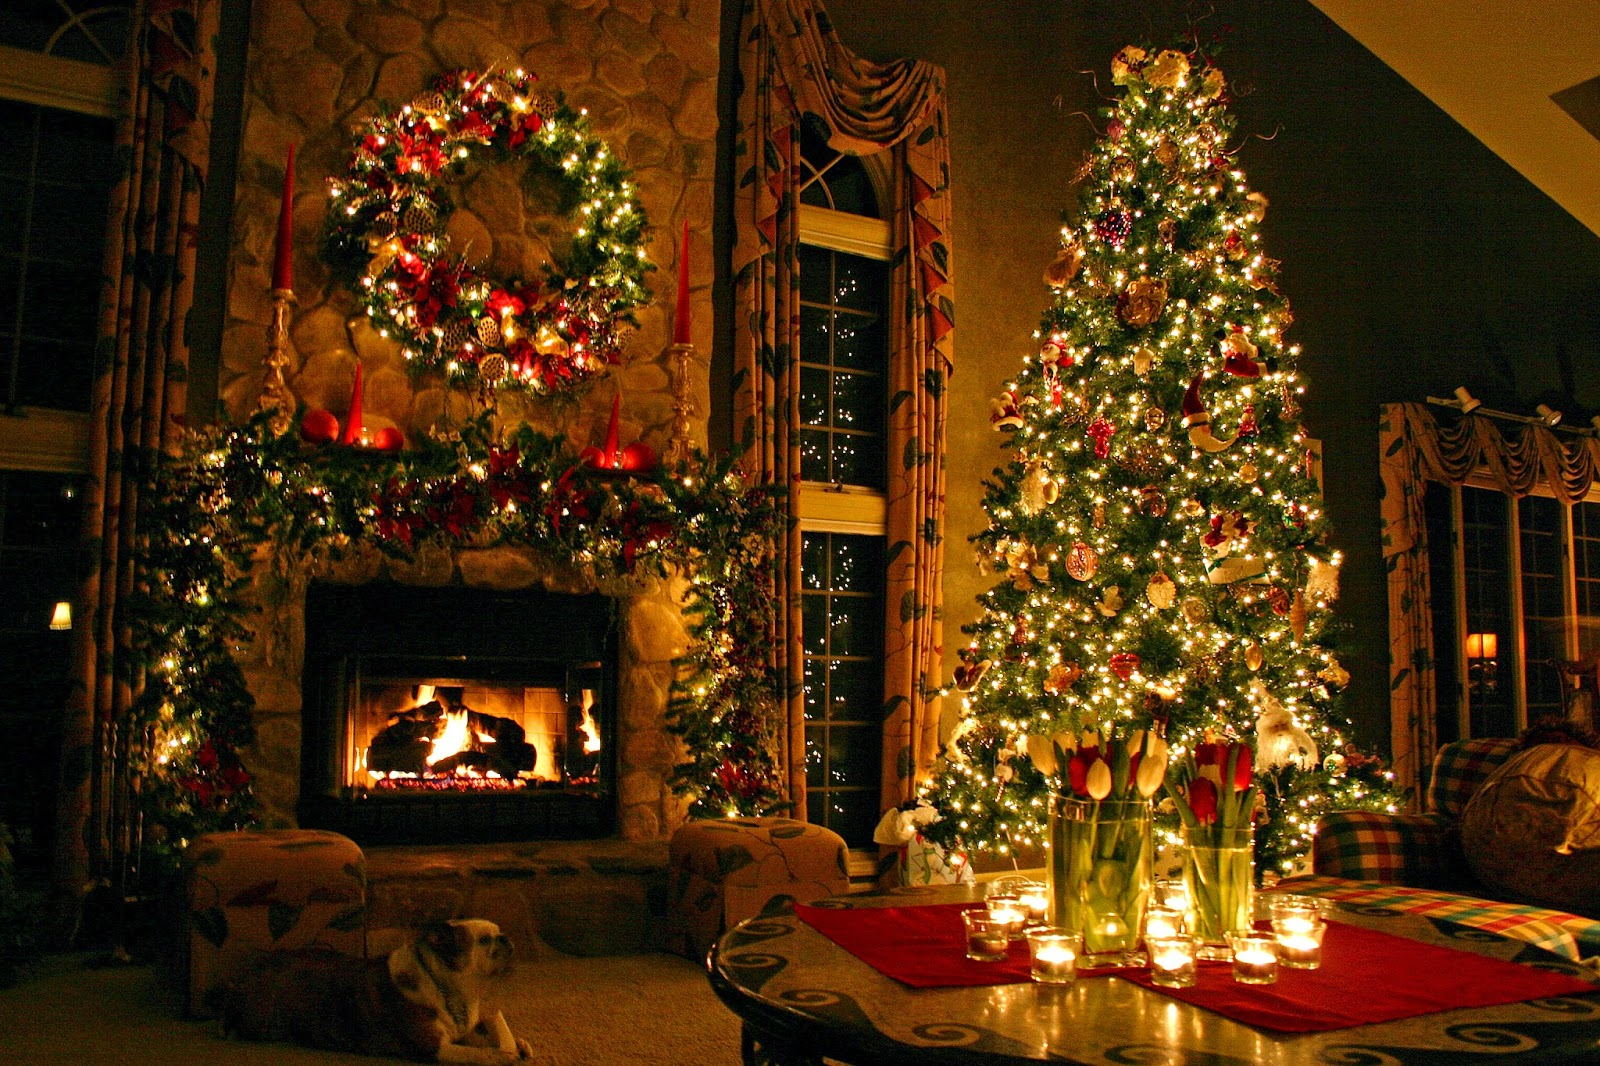 Christmas Fireplace Mantel Decoration Ideas For Home Made